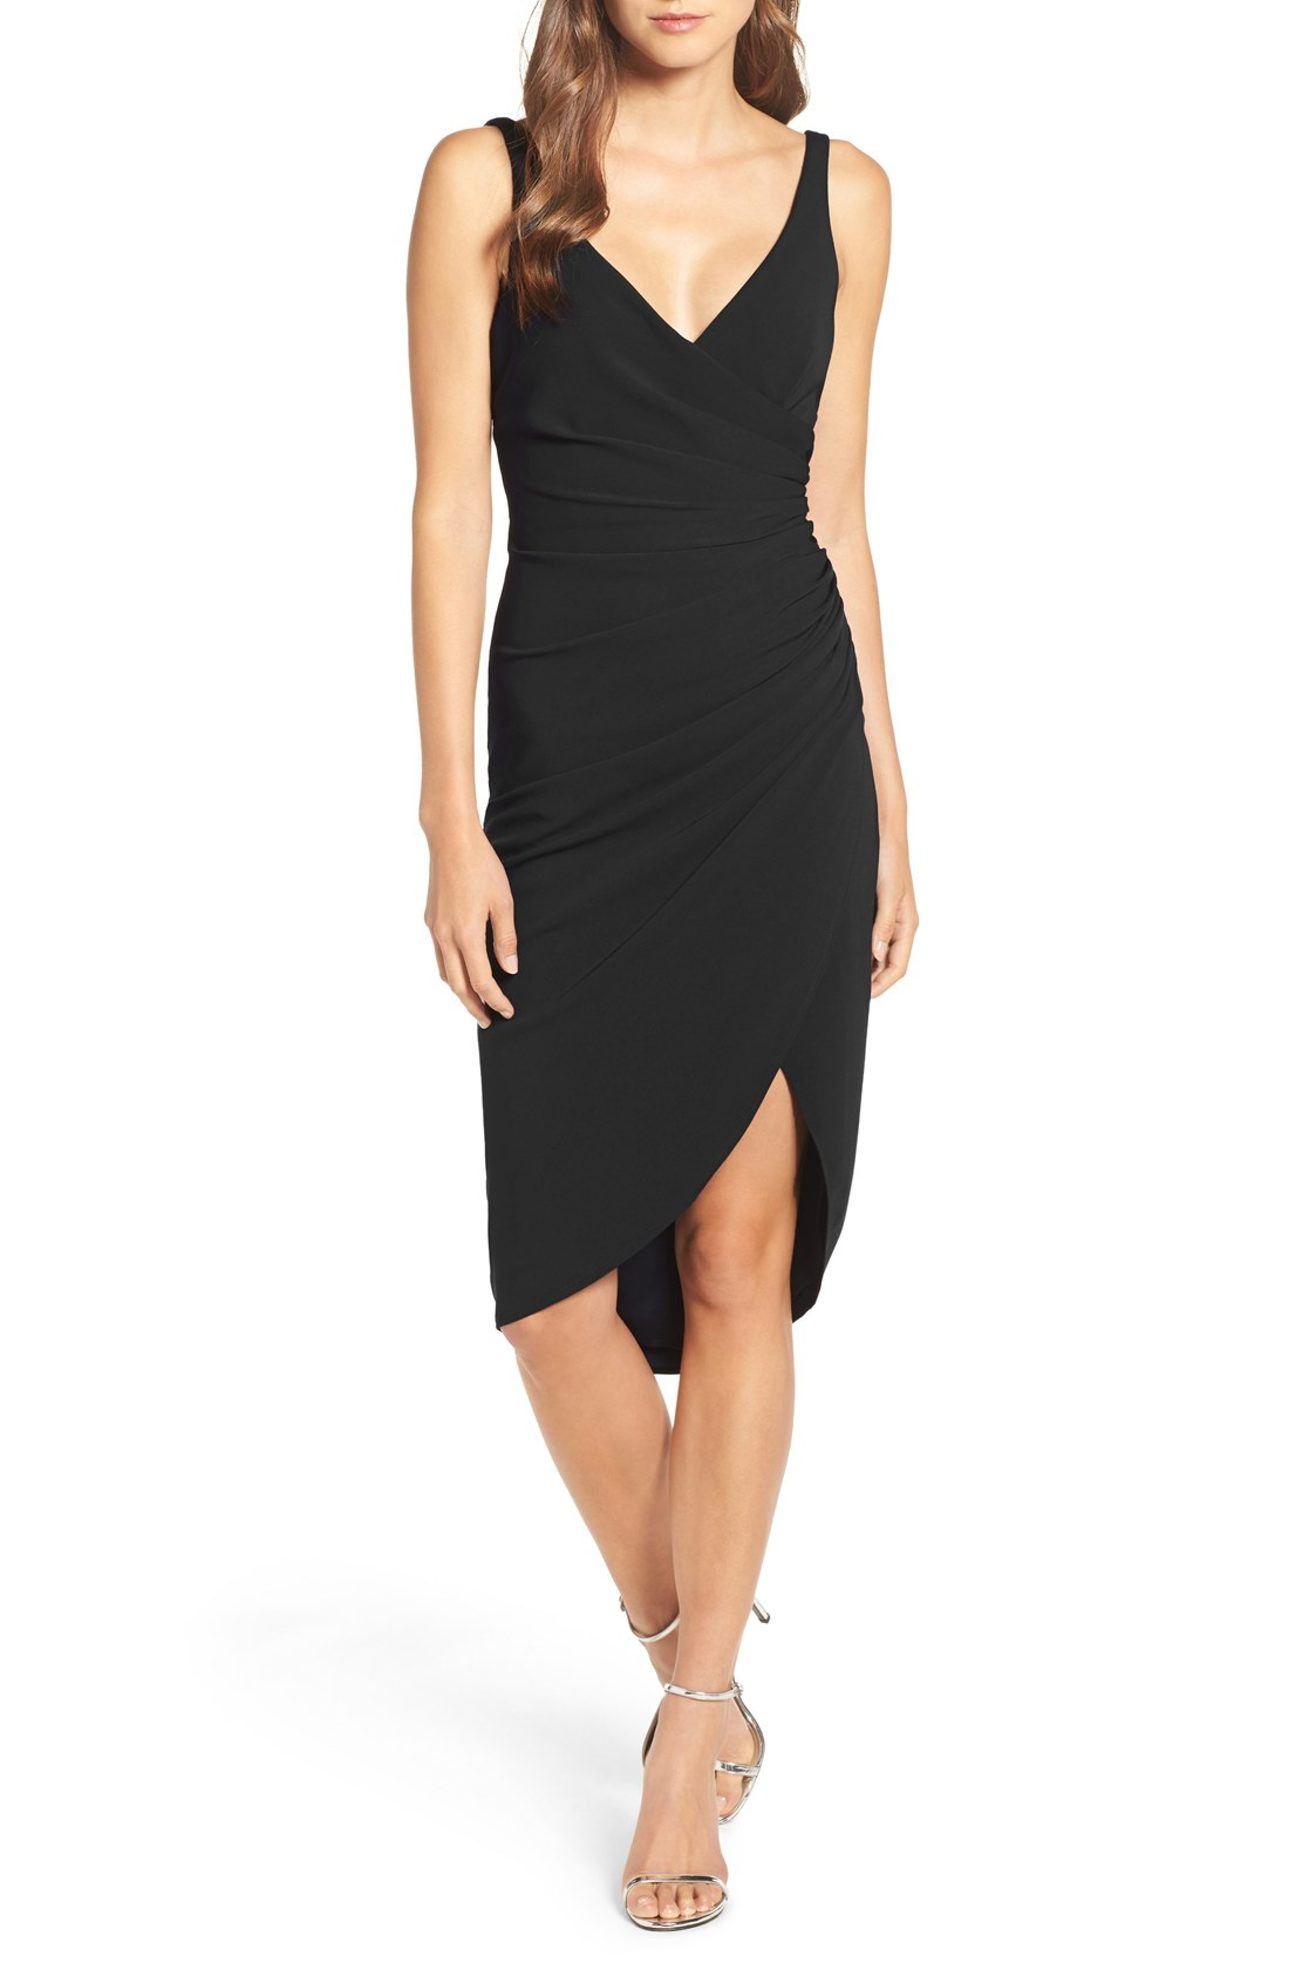 Katie May, Wrap Front Crepe Dress - $260.00. (Image: Nordstrom)